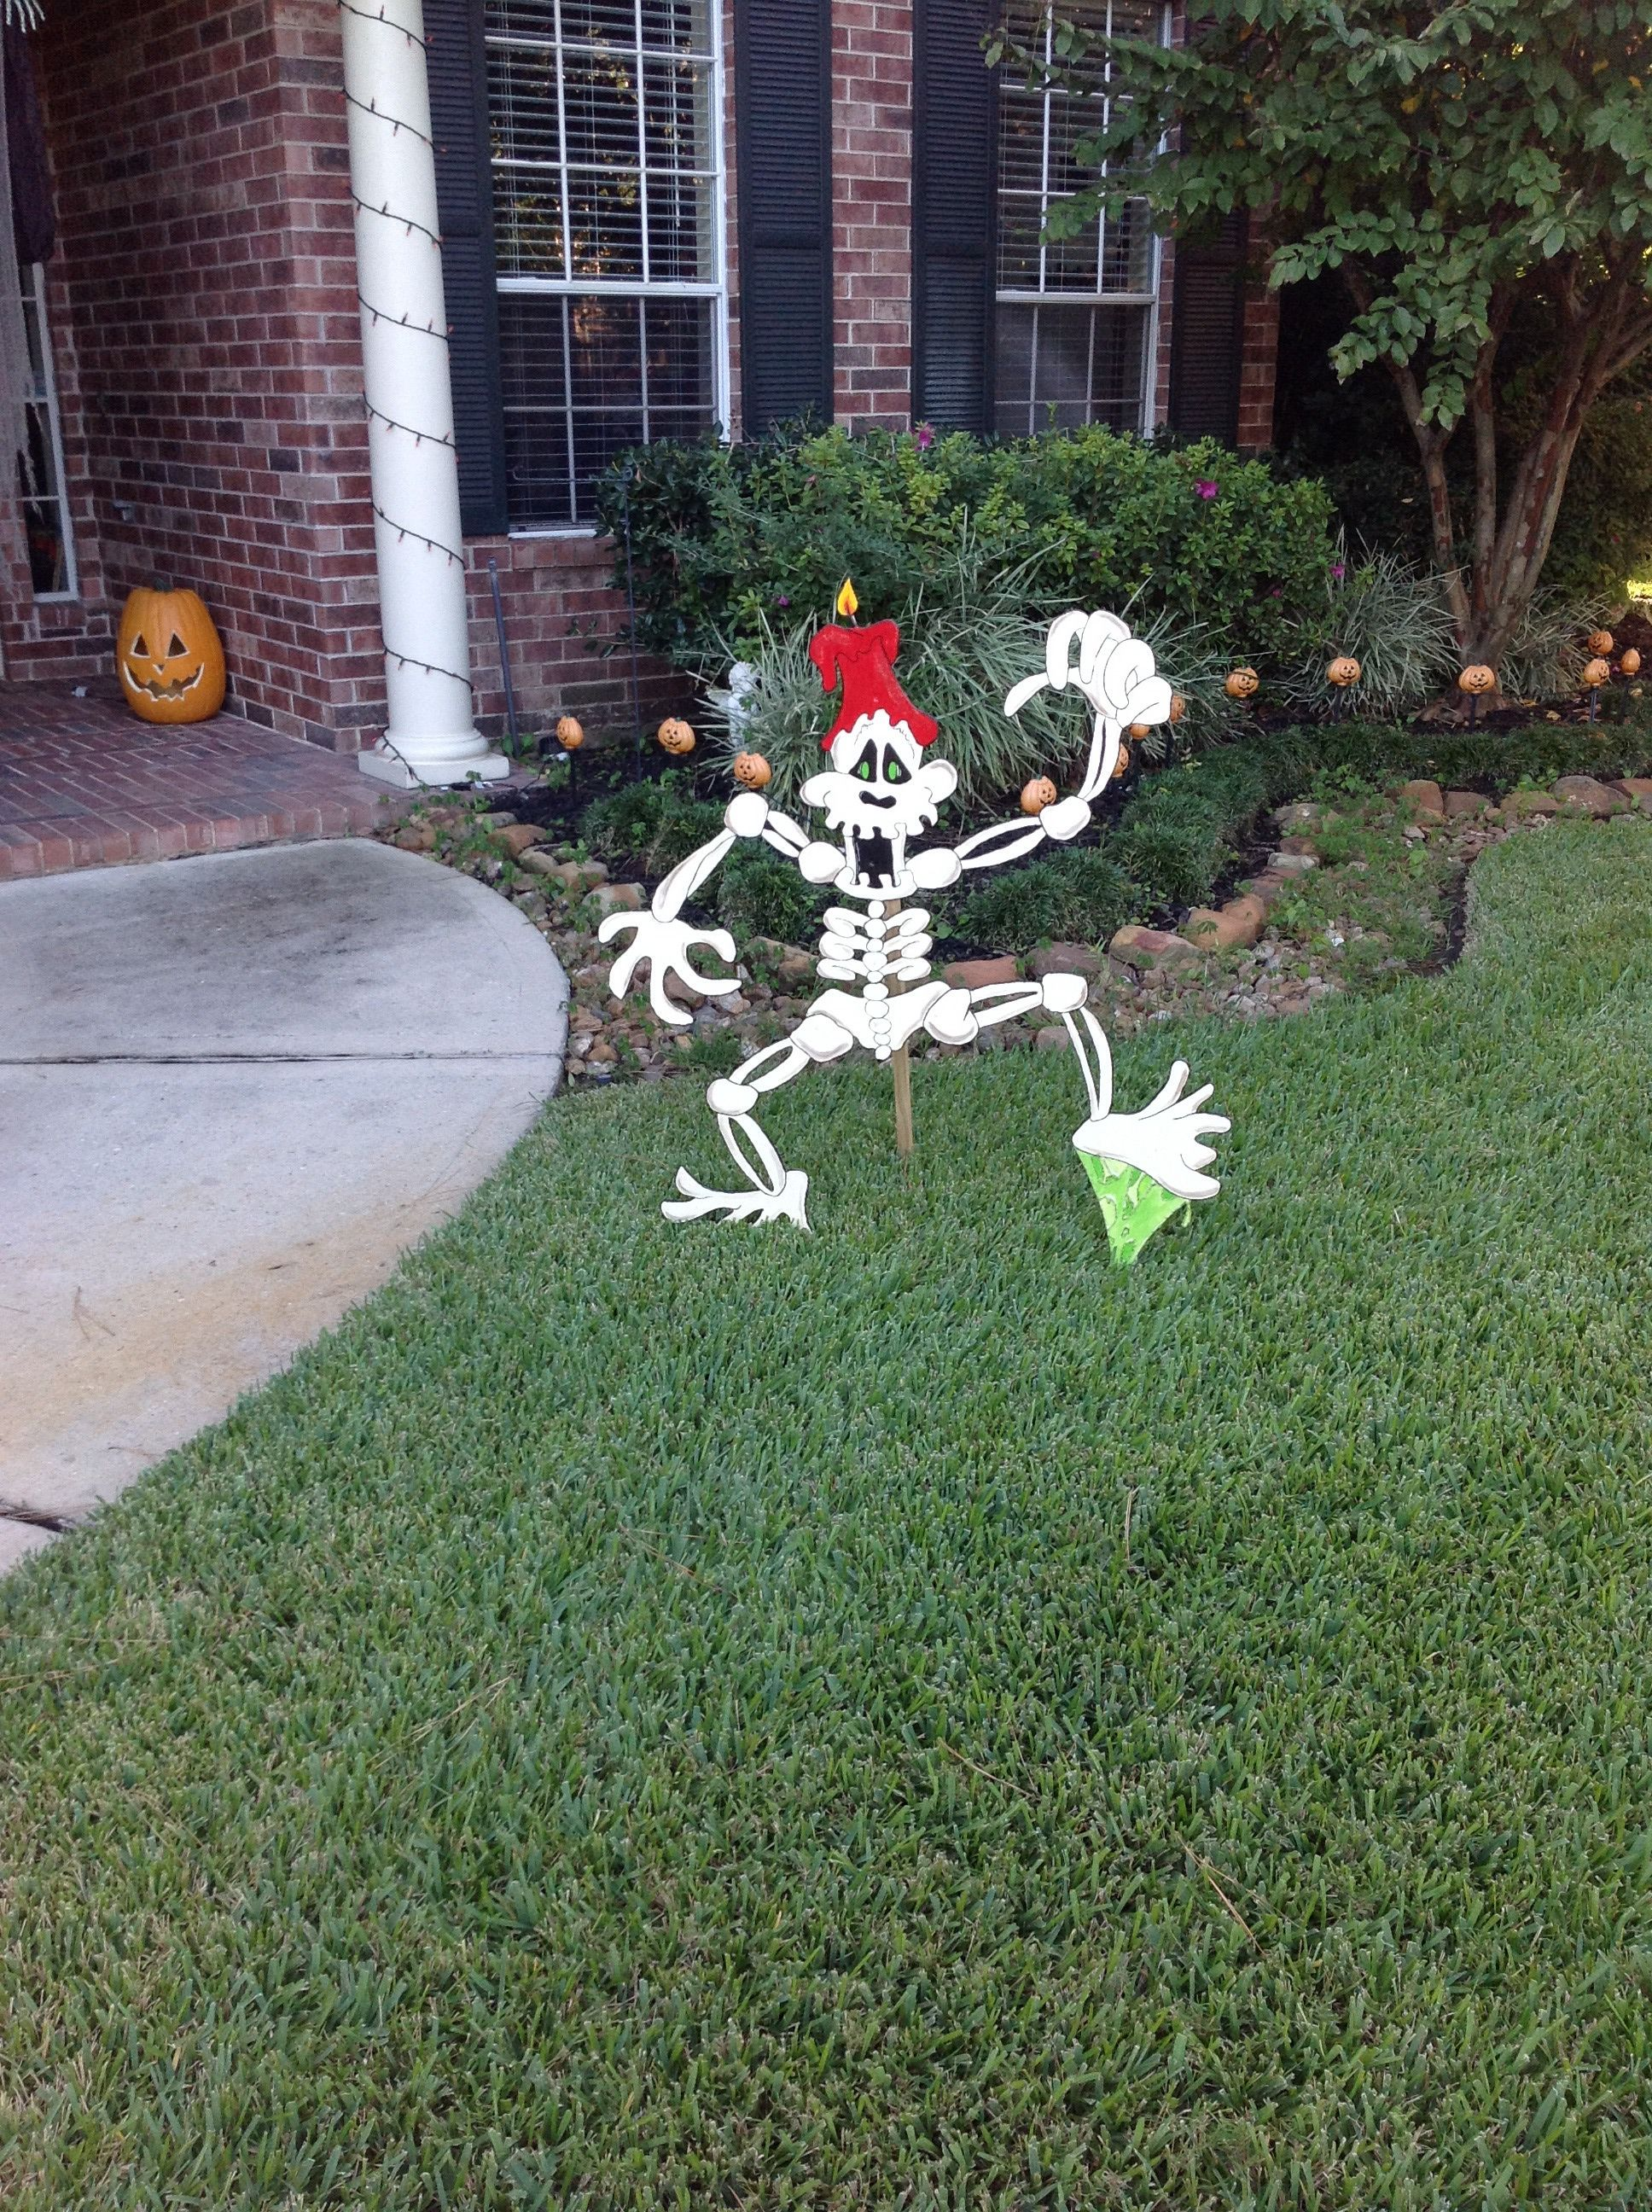 Halloween Deko Holz Skelet Vorgarten Halloween Decoration Wood Skeleton Front Yard Christmas Ornaments Holiday Holiday Decor